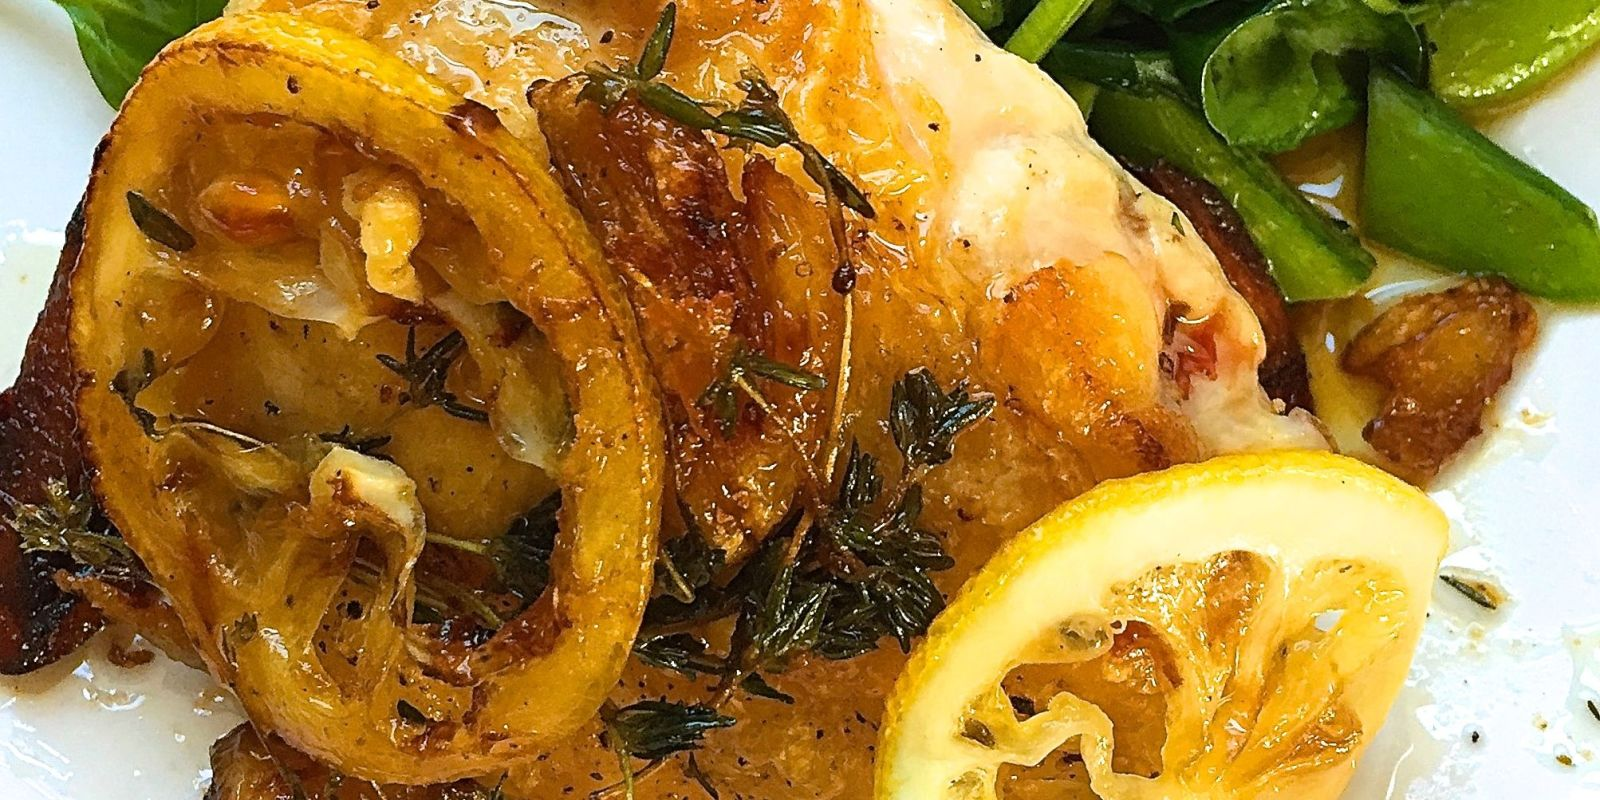 ... Roasted Chicken Thighs with Spinach and Snap Peas Recipe - Delish.com